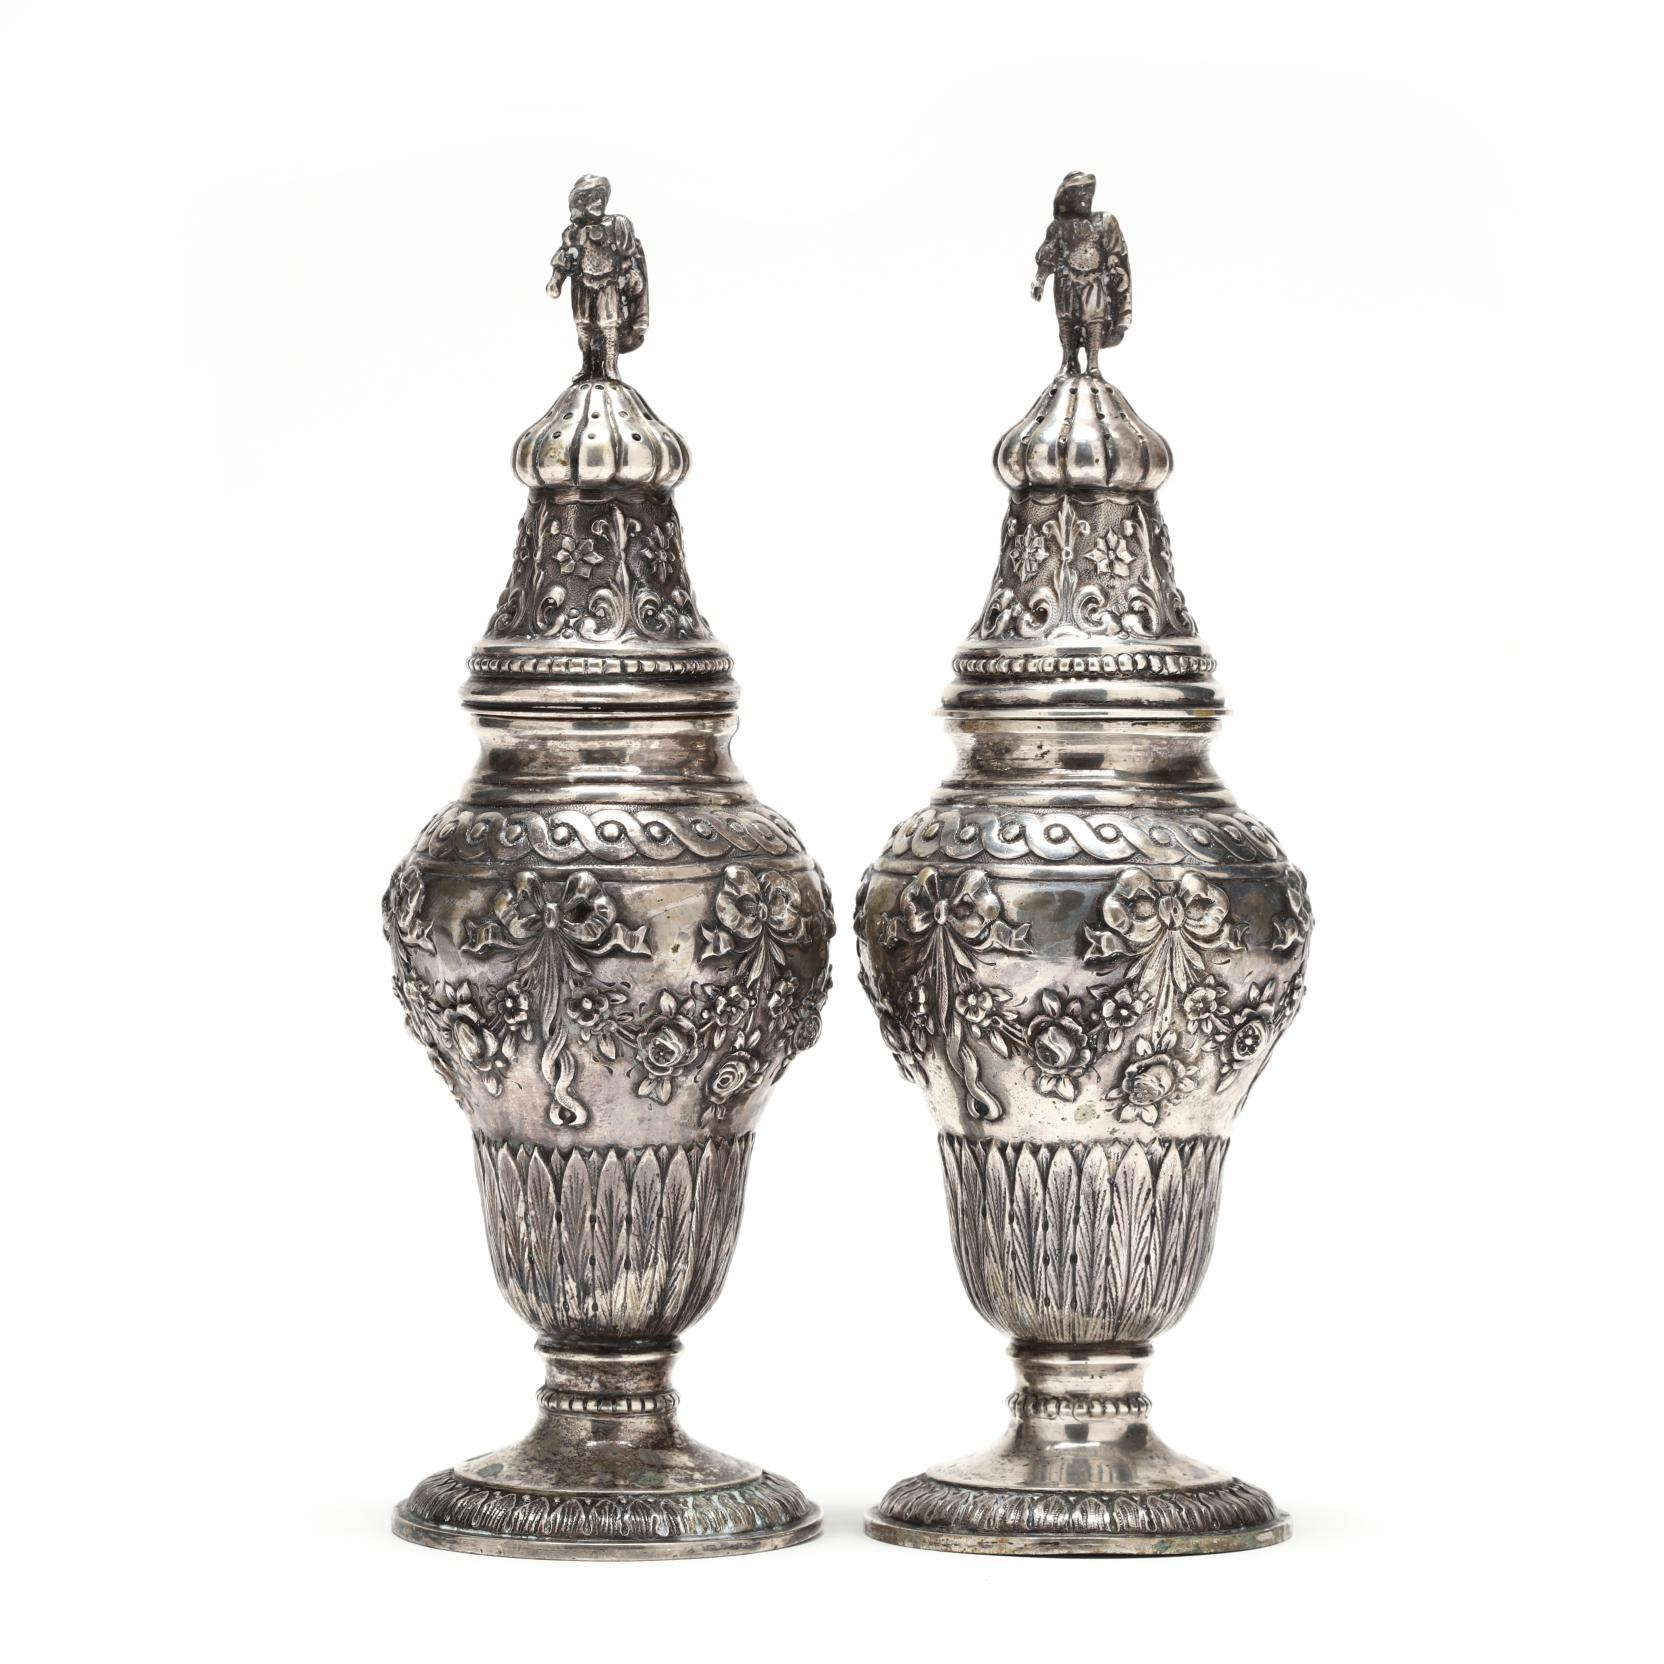 pair-of-rococo-style-silver-figural-casters